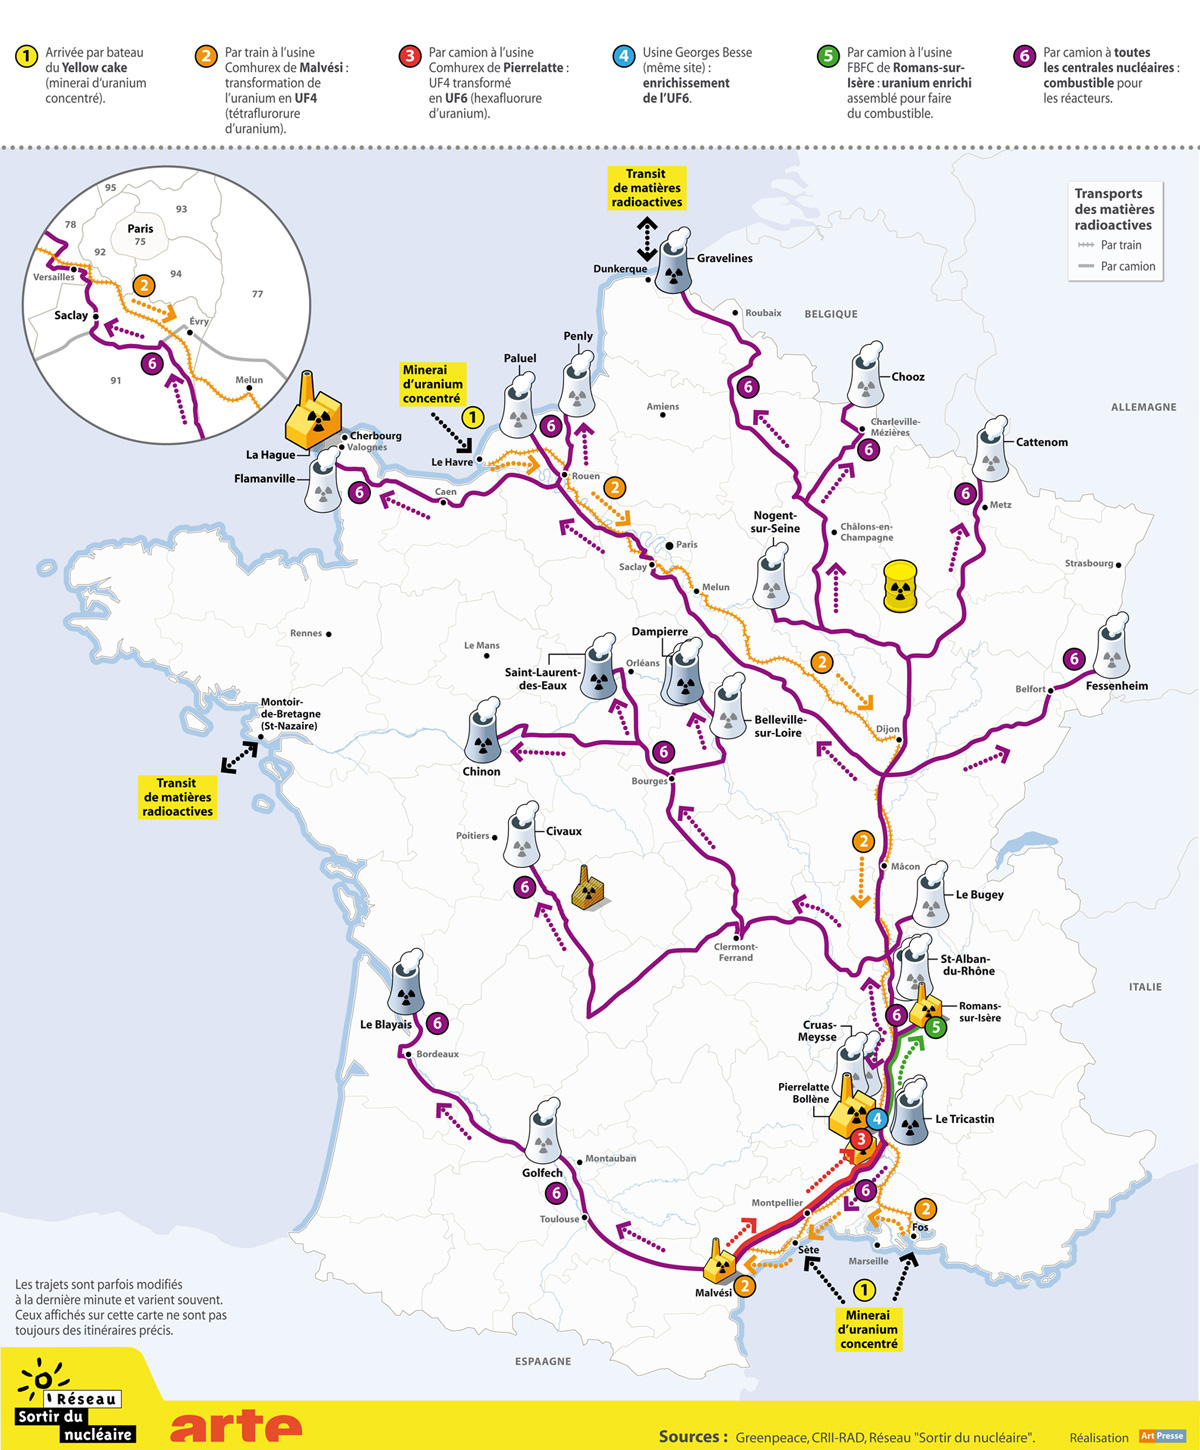 carte-transports-combustibles-web.jpg